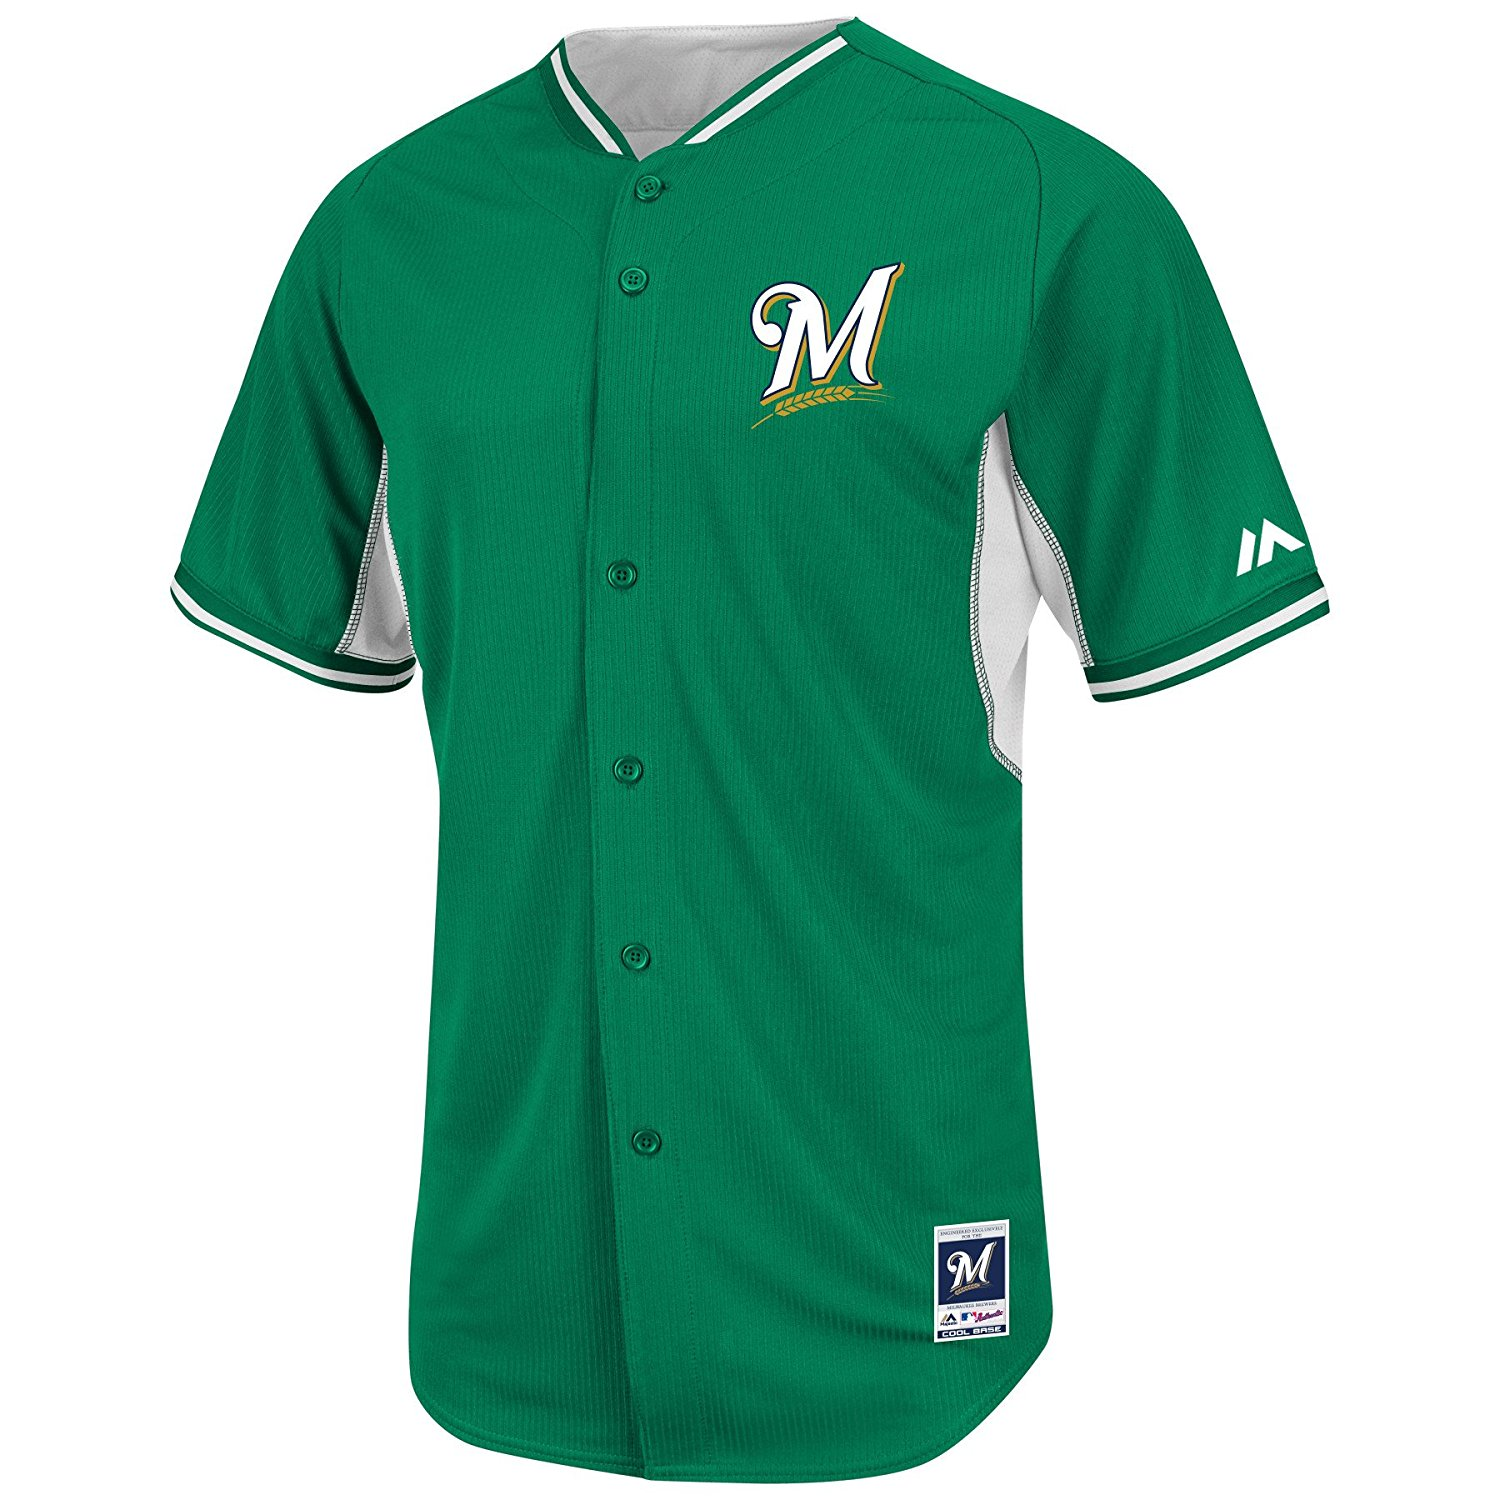 4ea9e3625 Get Quotations · Milwaukee Brewers Kelly Green Batting Practice Jersey by  Majestic Select Jersey Size  40 - Small